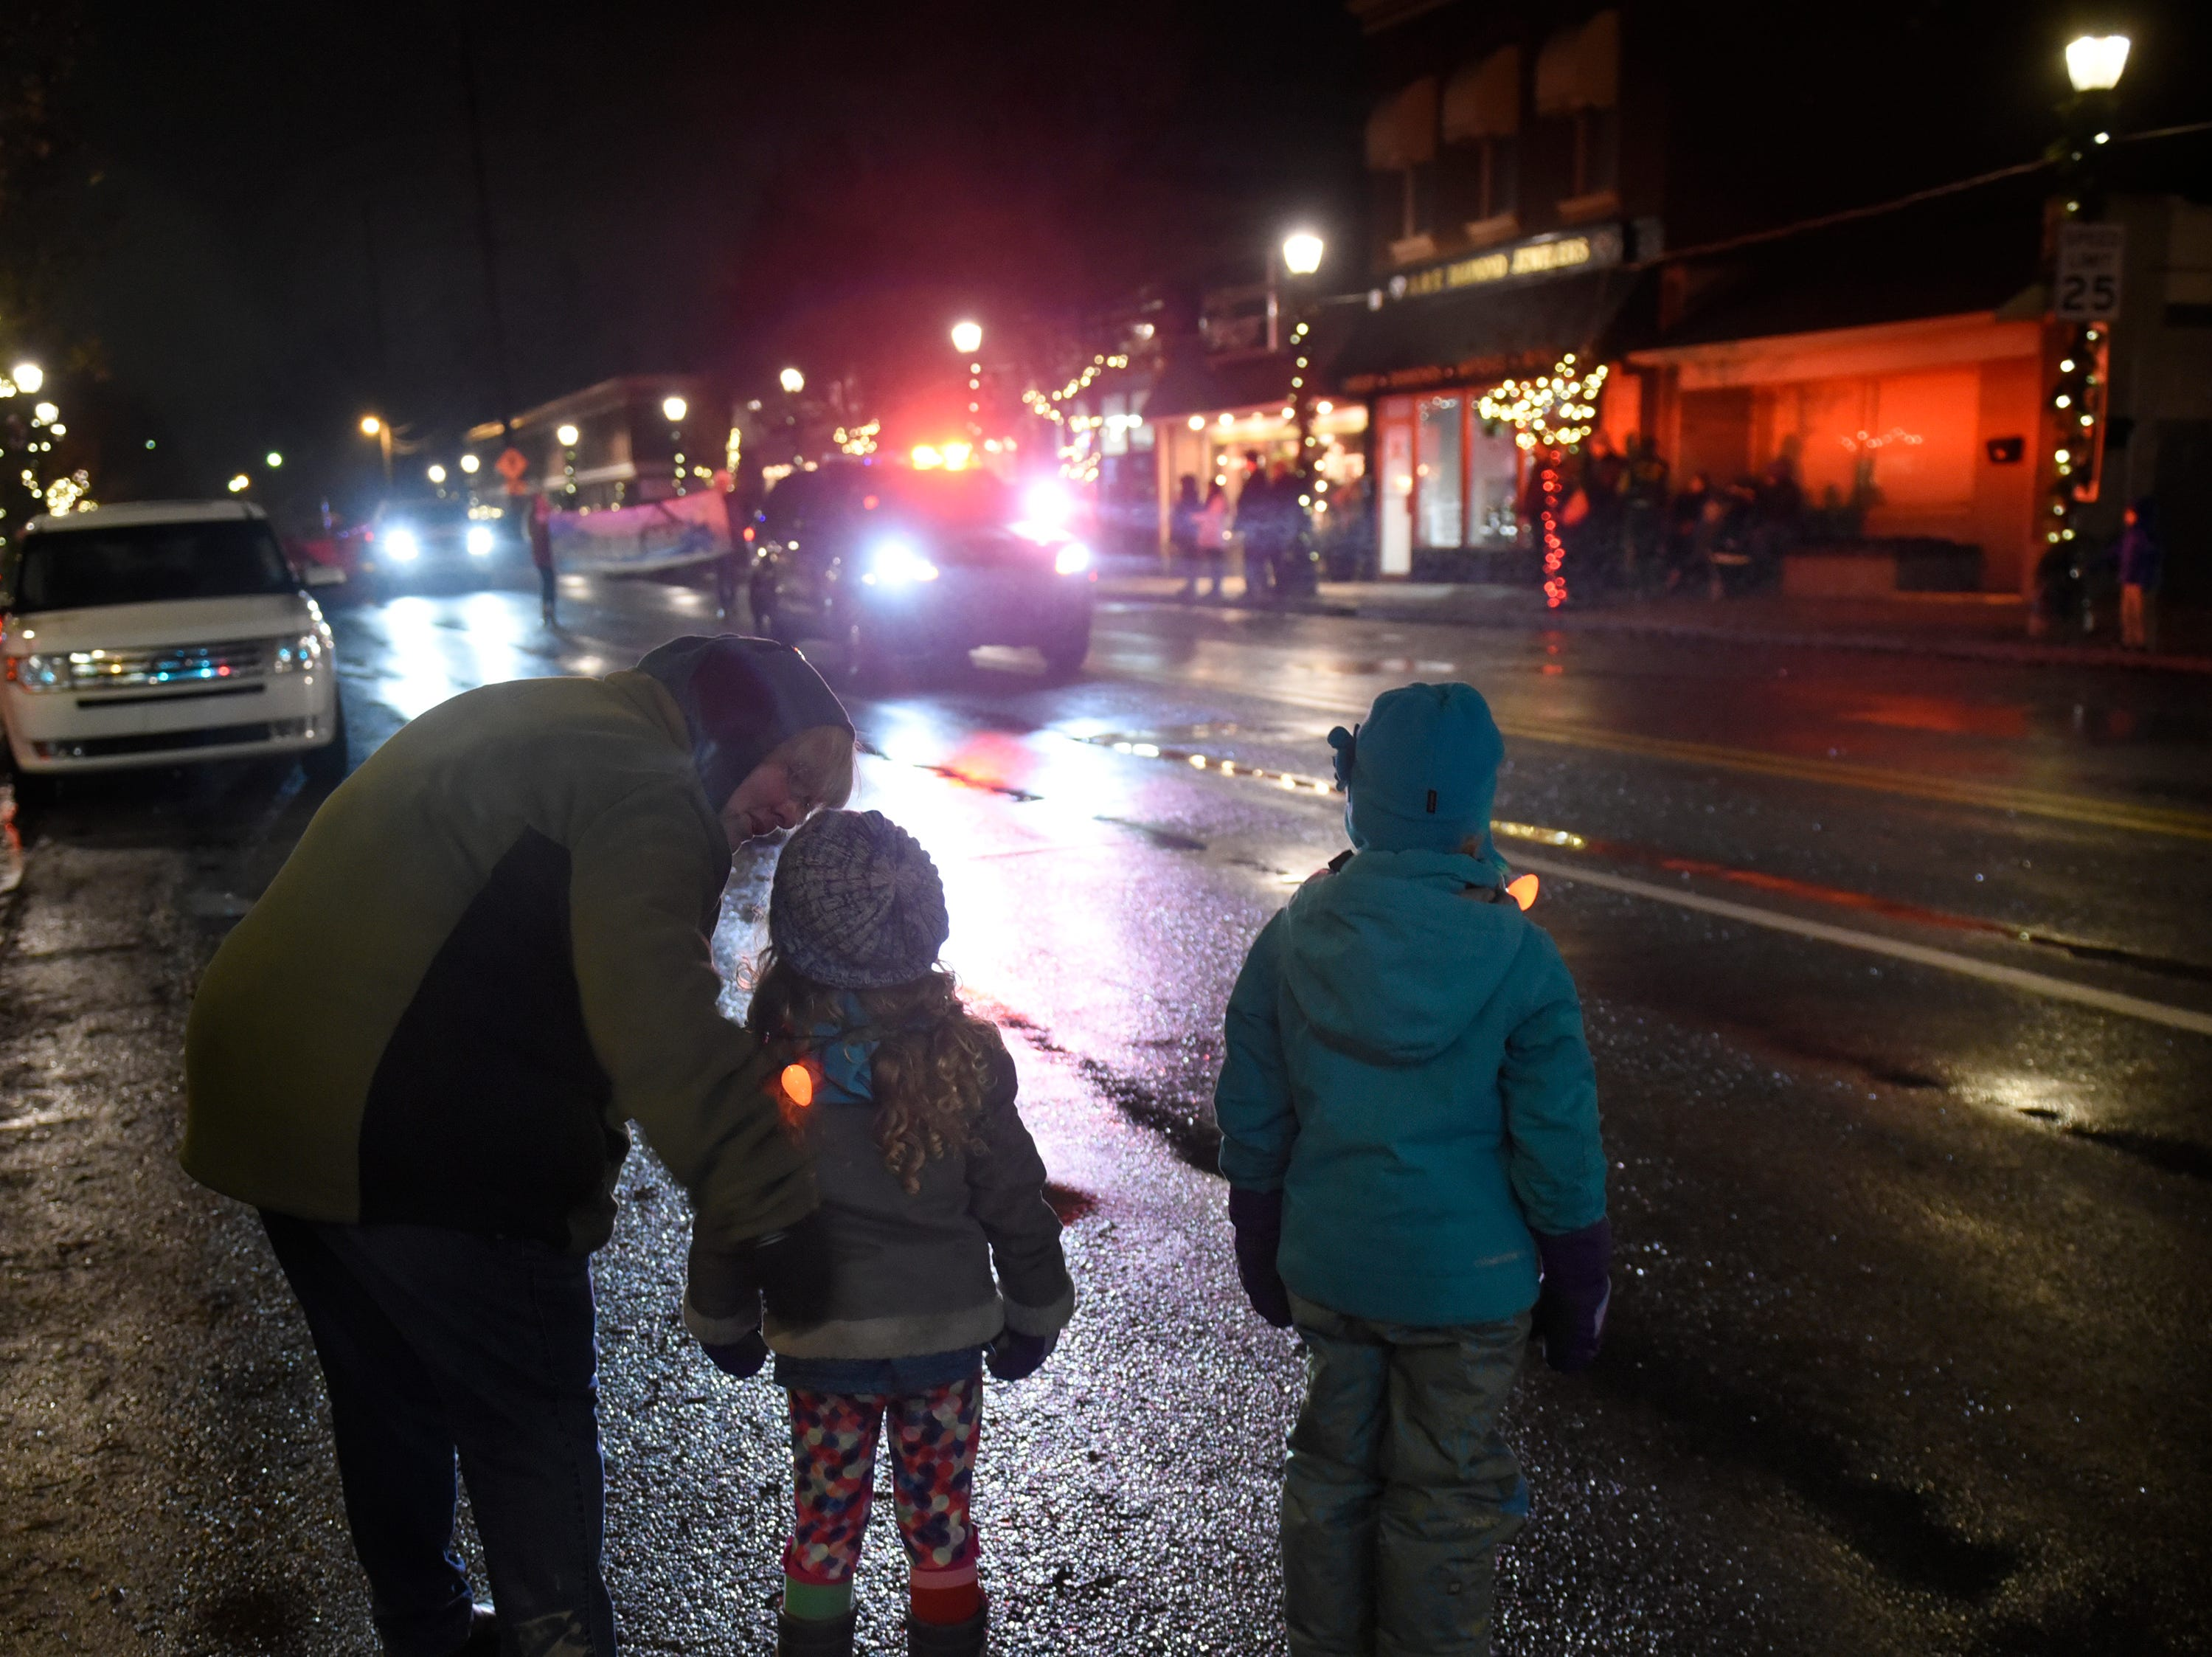 The start of South Lyon's Lighted Parade, part of the Cool Yule celebration Dec. 1, 2018.